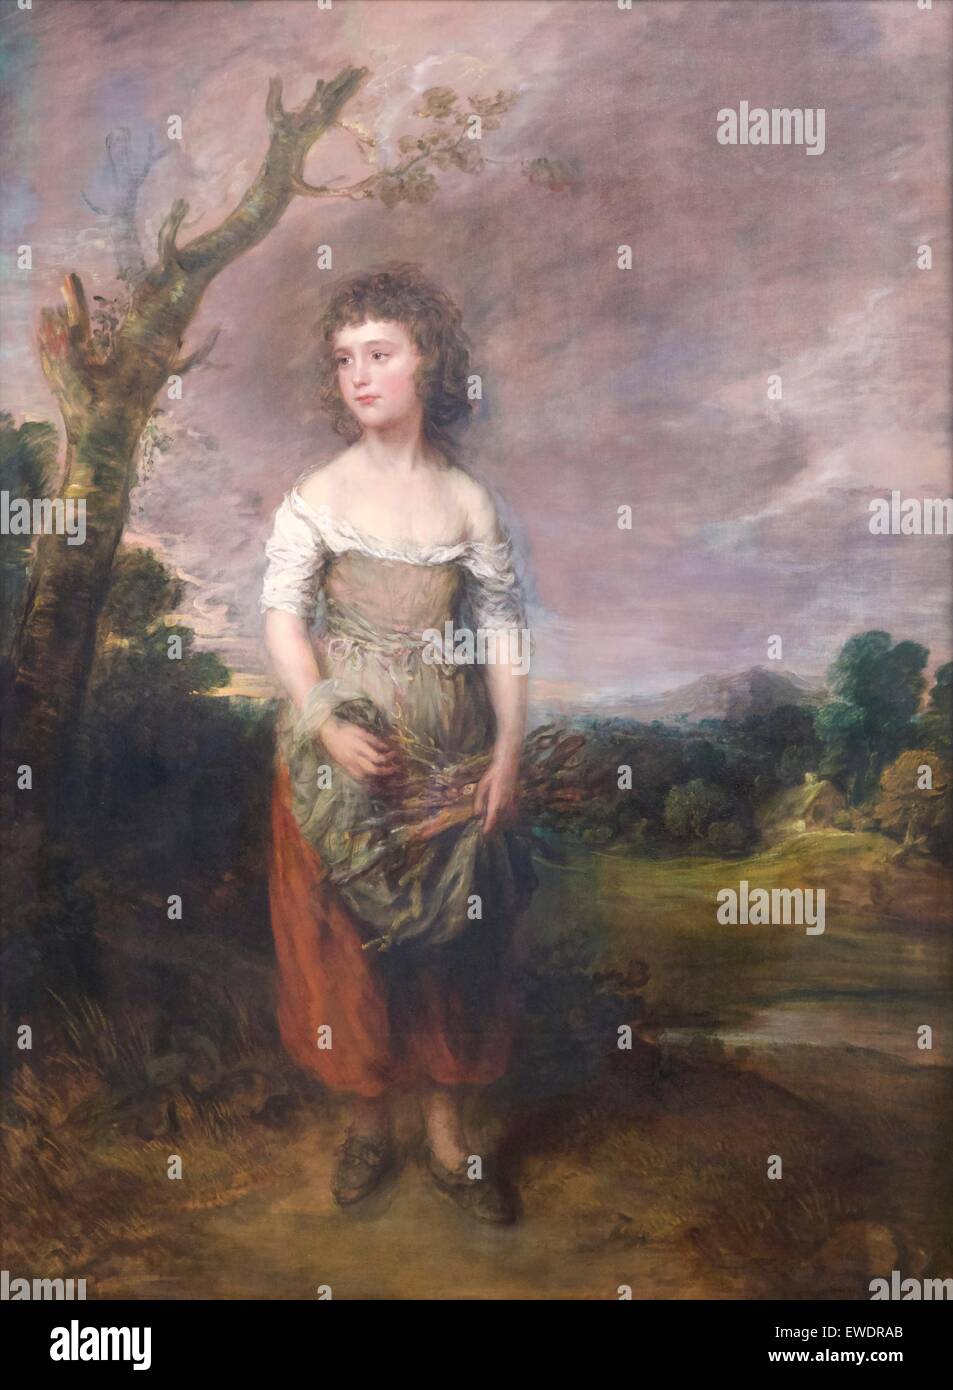 Peasant Girl Gathering Faggots in a Wood, by Thomas Gainsborough, 1782, - Stock Image